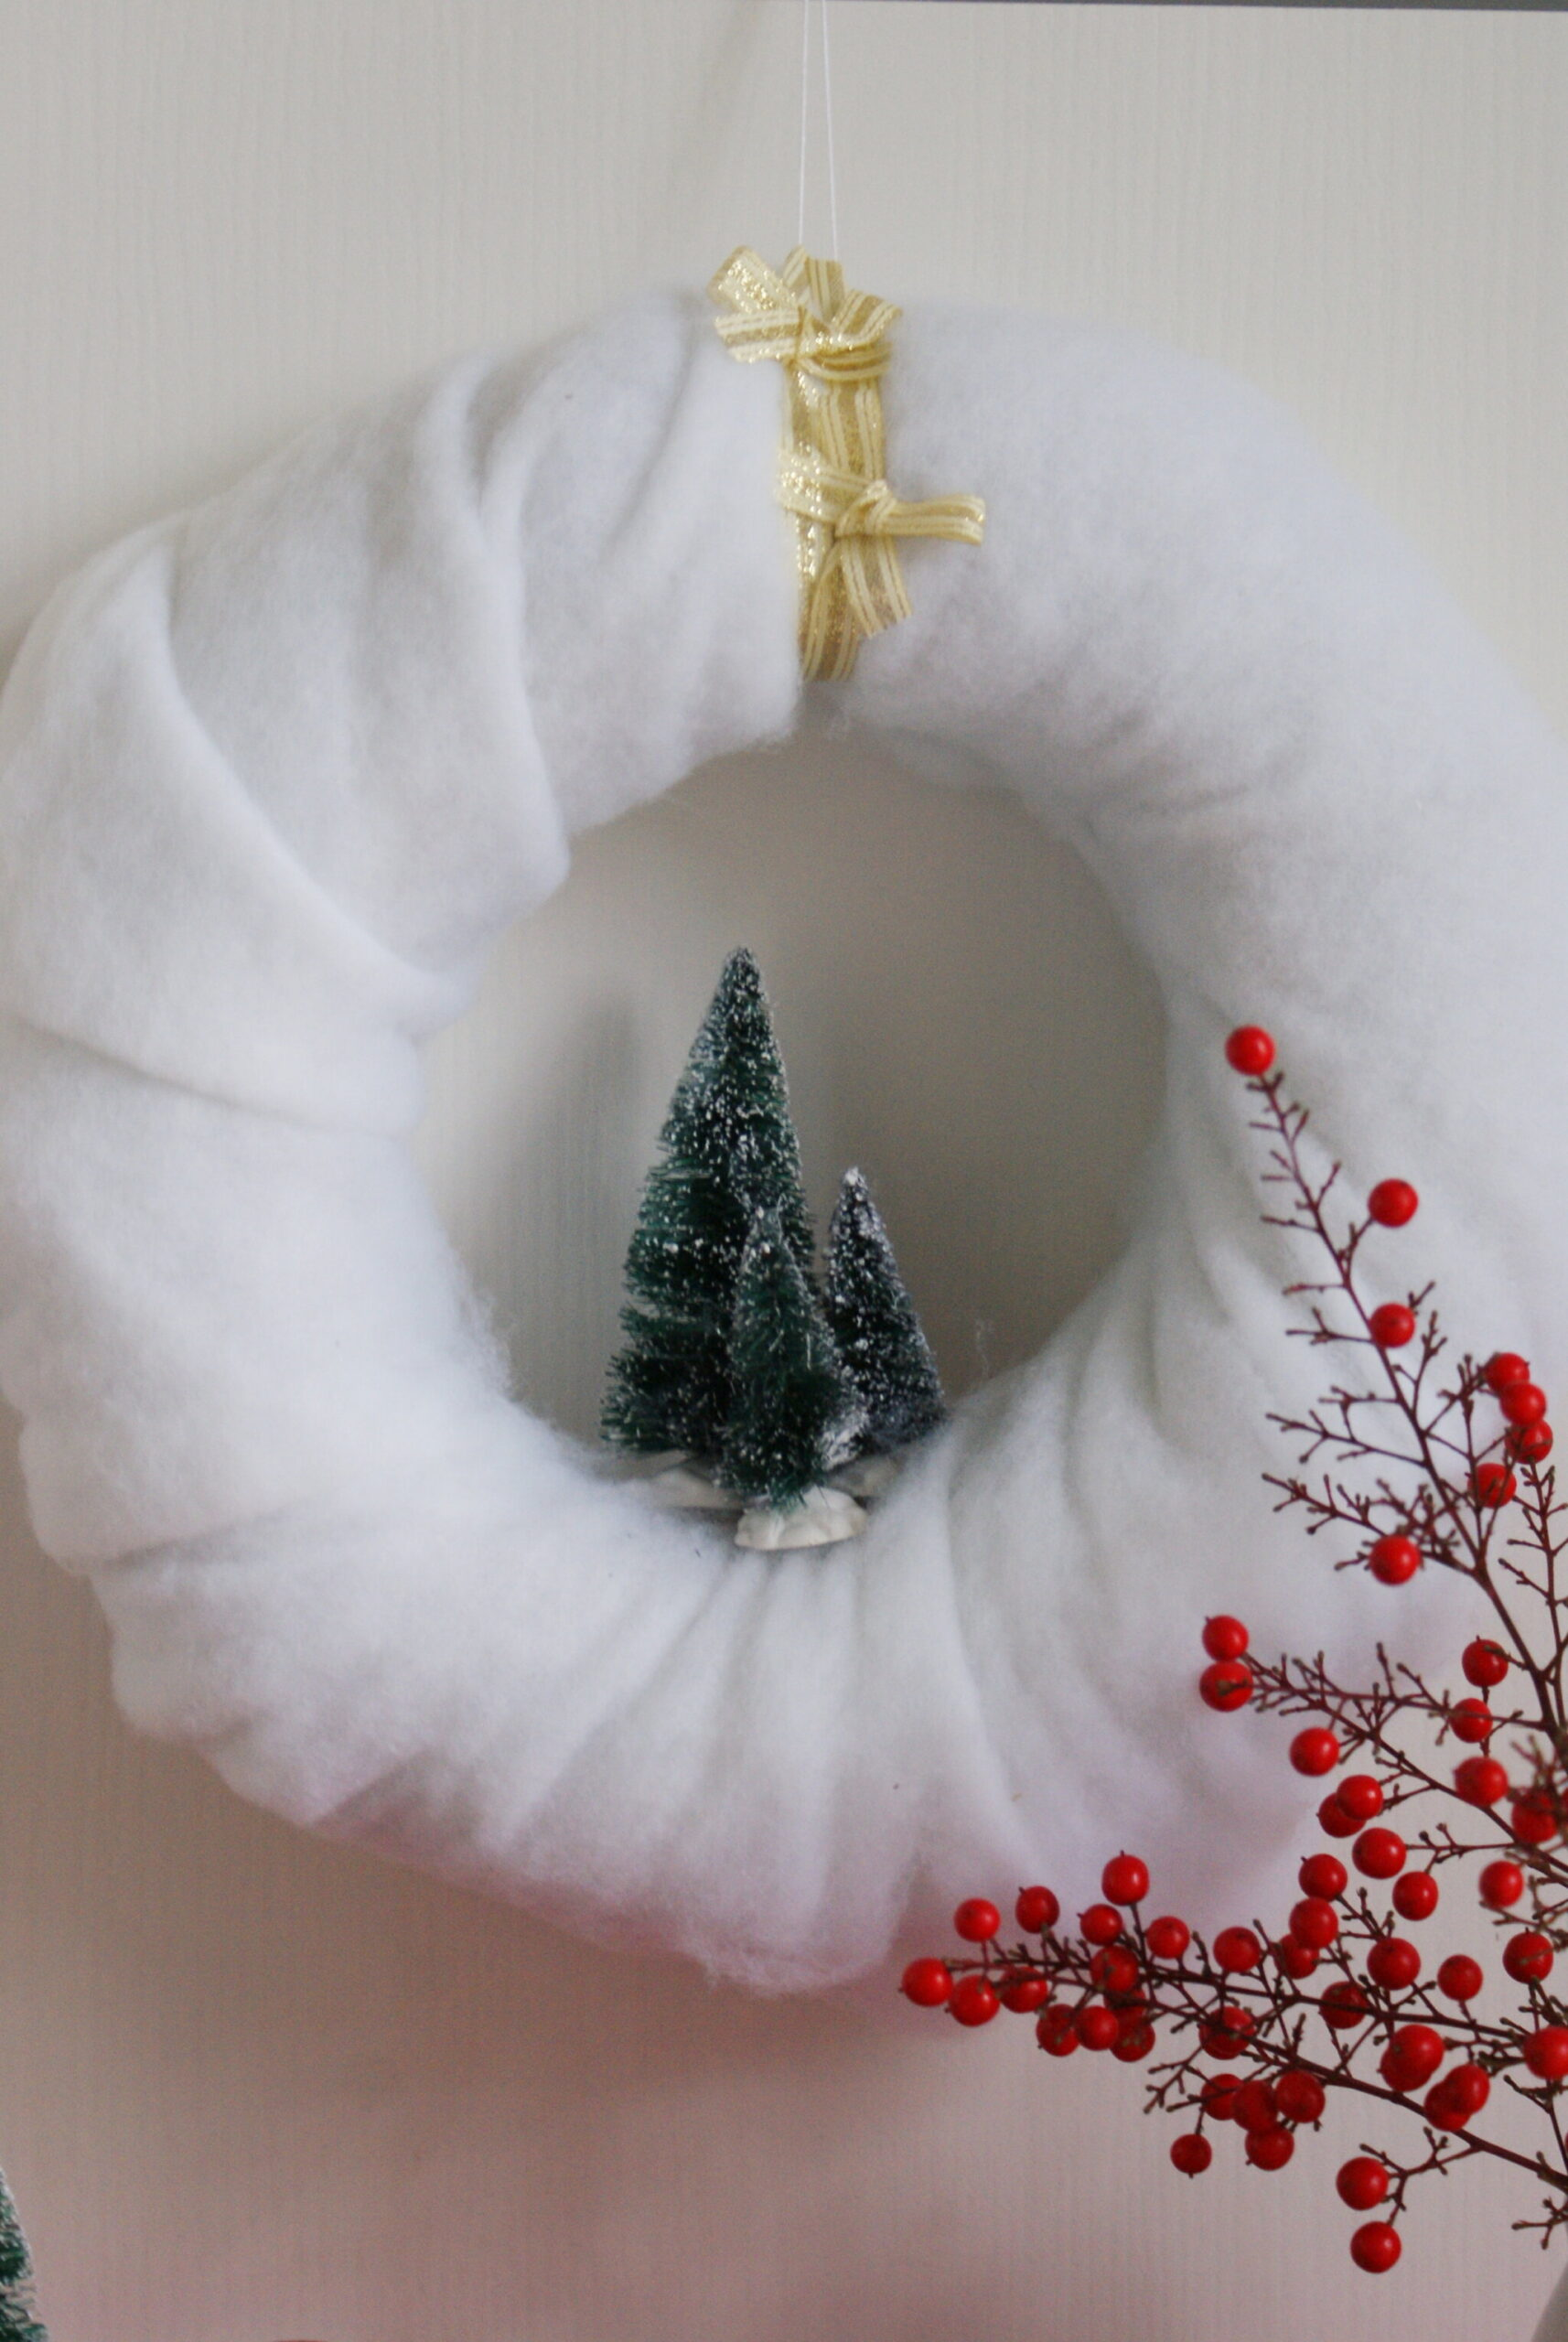 diy hanging wreath snow white cotton minimalist miniature tree christmas handmade last minute easy tutorial